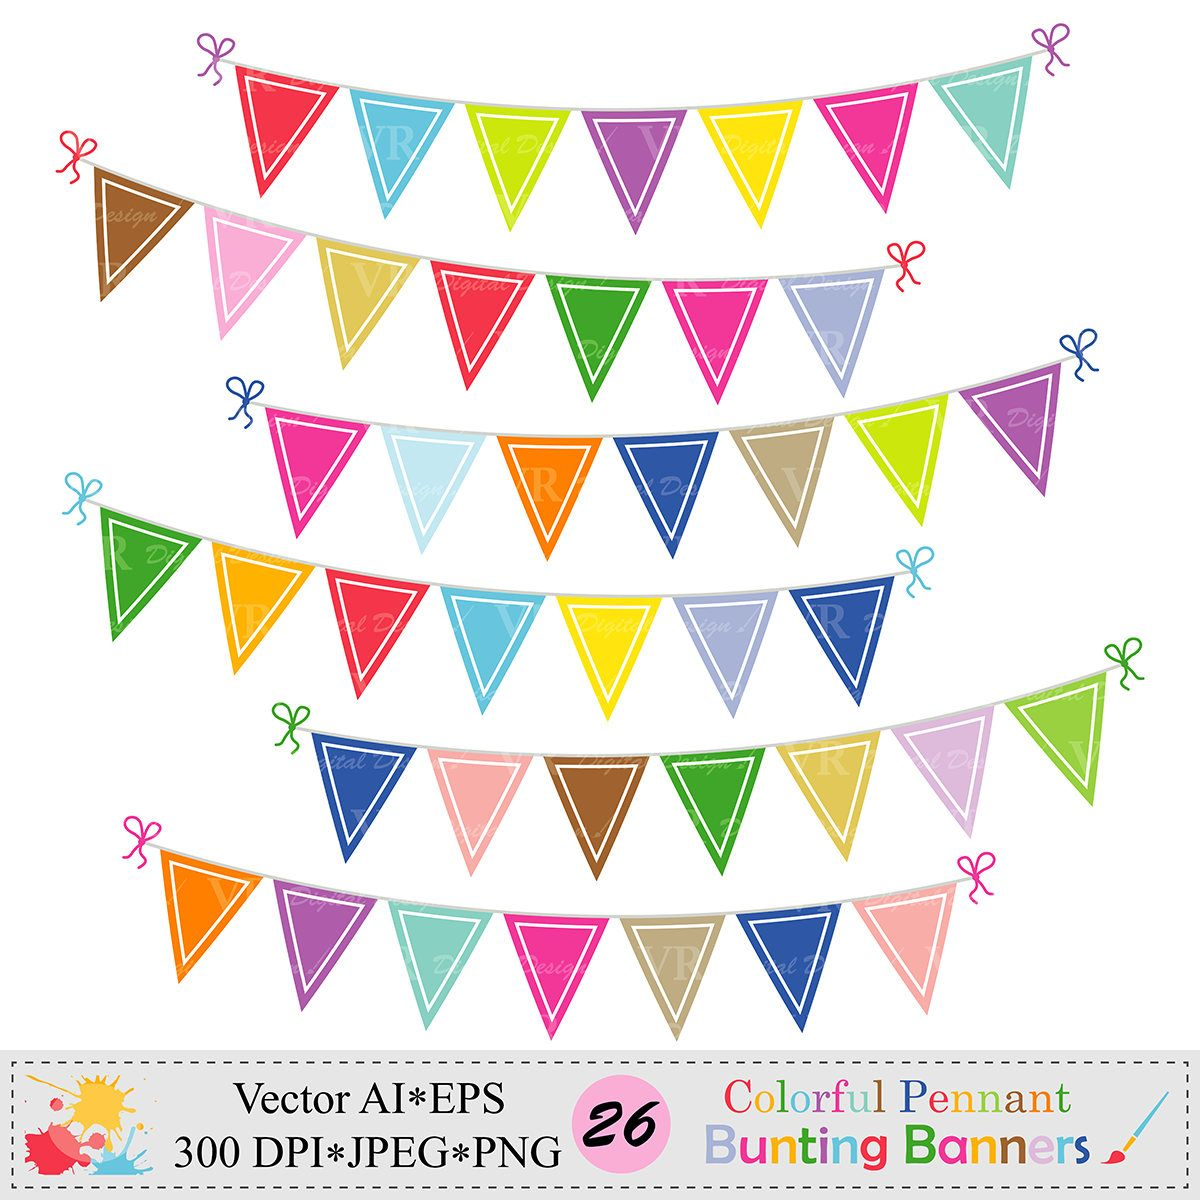 Colorful Pennant Bunting Banners Clip Art Birthday Party Etsy Banner Clip Art Bunting Banner Clip Art